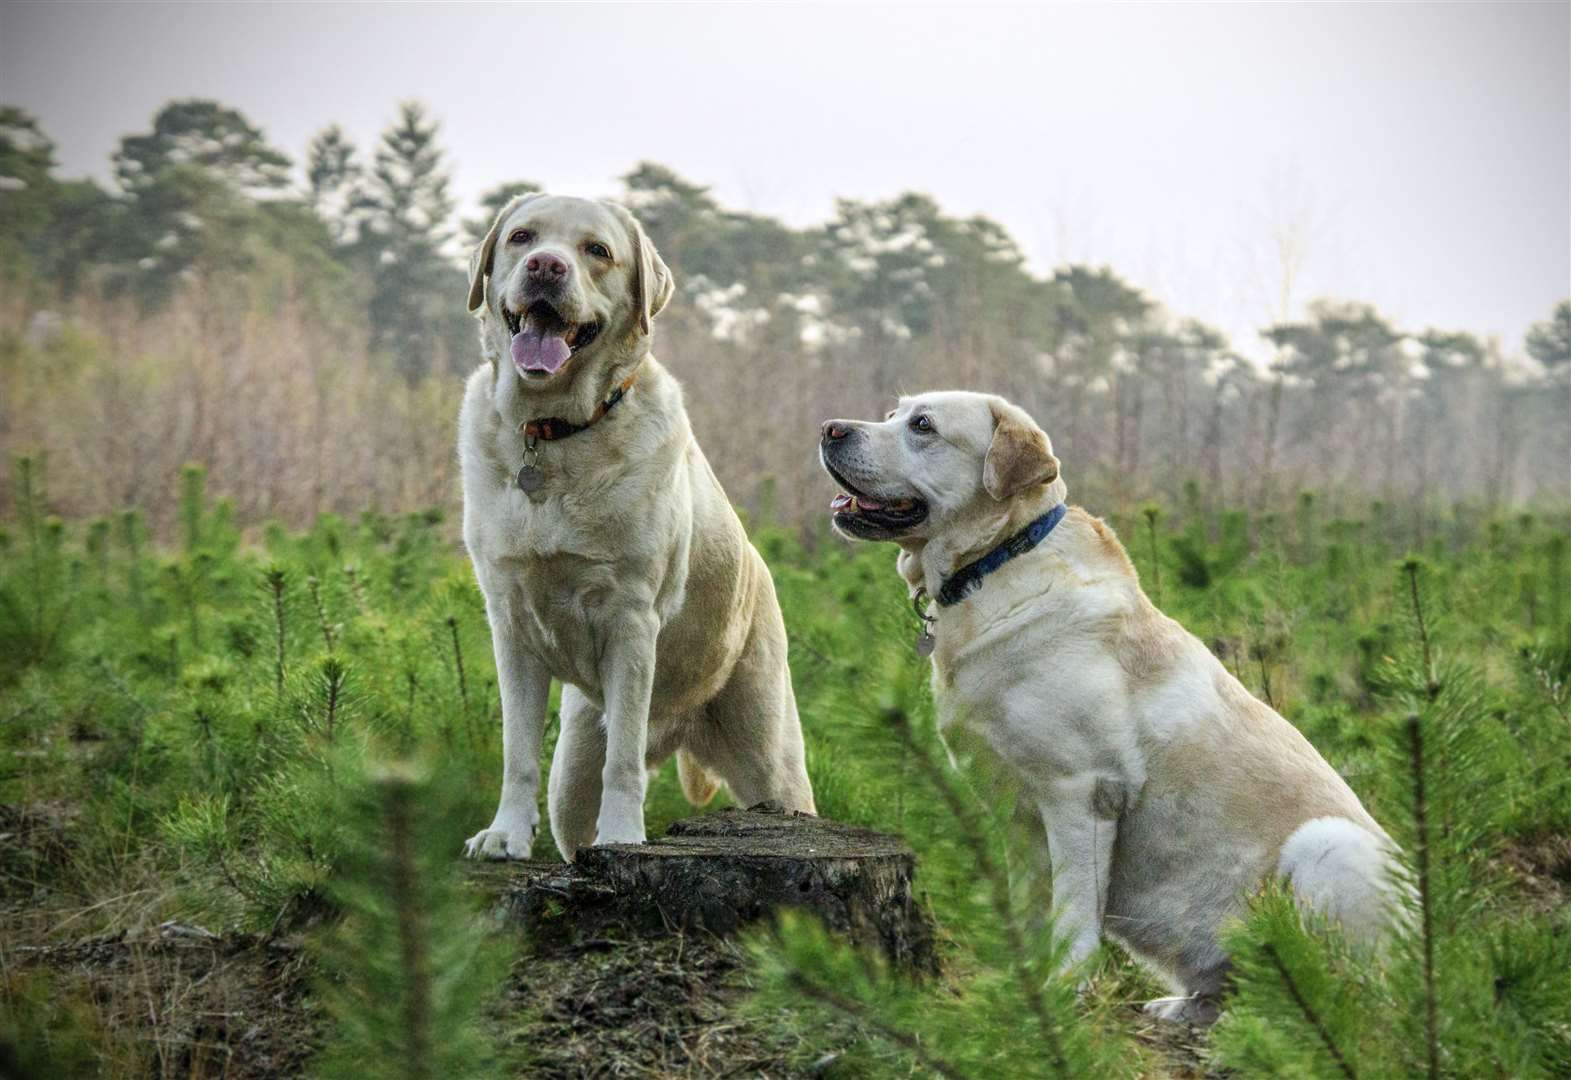 'Lift ban on areas to let dogs walk'